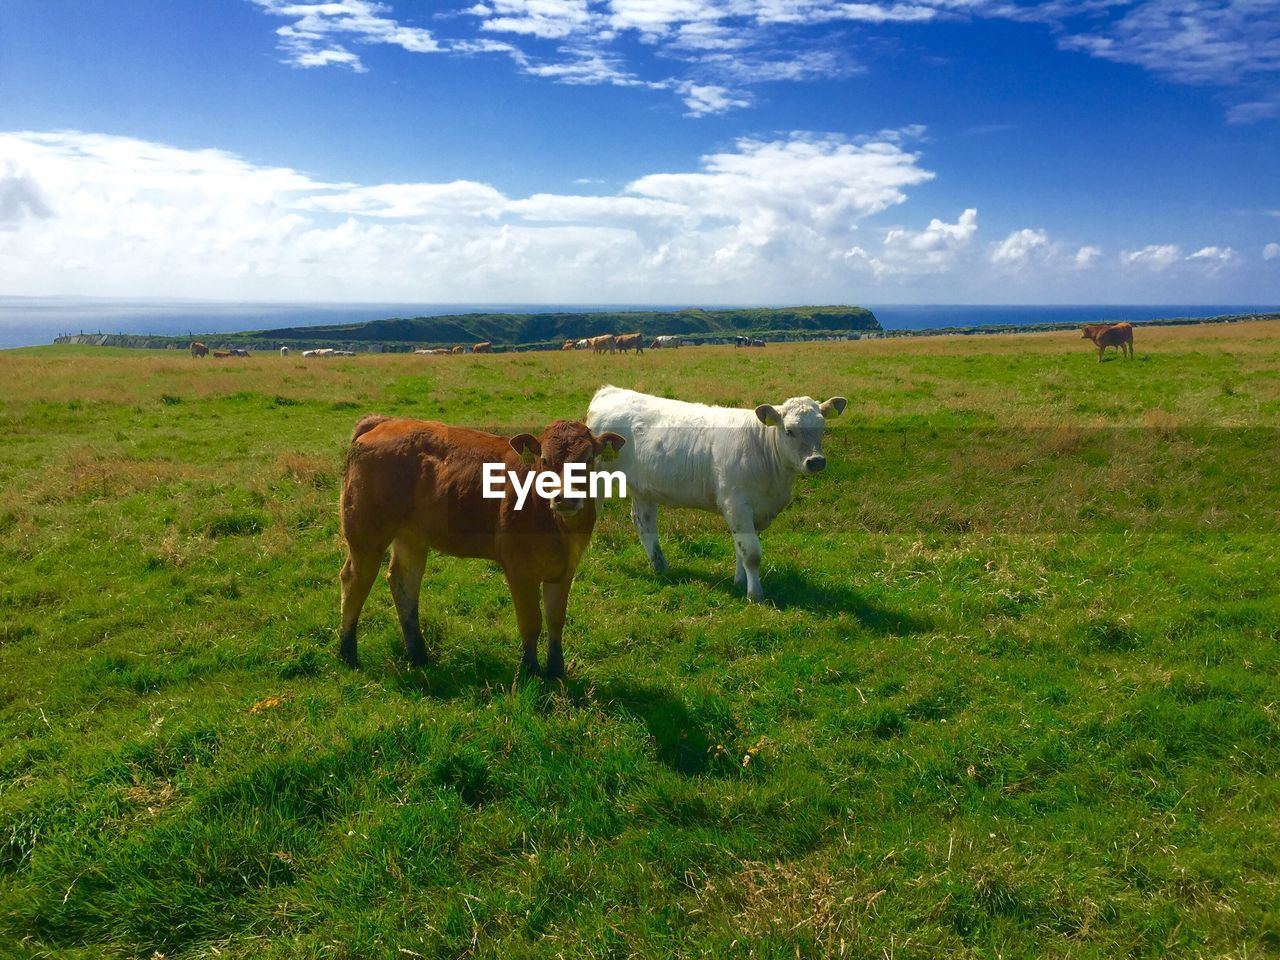 mammal, grass, domestic animals, domestic, field, livestock, animal, pets, land, sky, animal themes, plant, cloud - sky, landscape, environment, group of animals, cattle, vertebrate, nature, green color, no people, herbivorous, outdoors